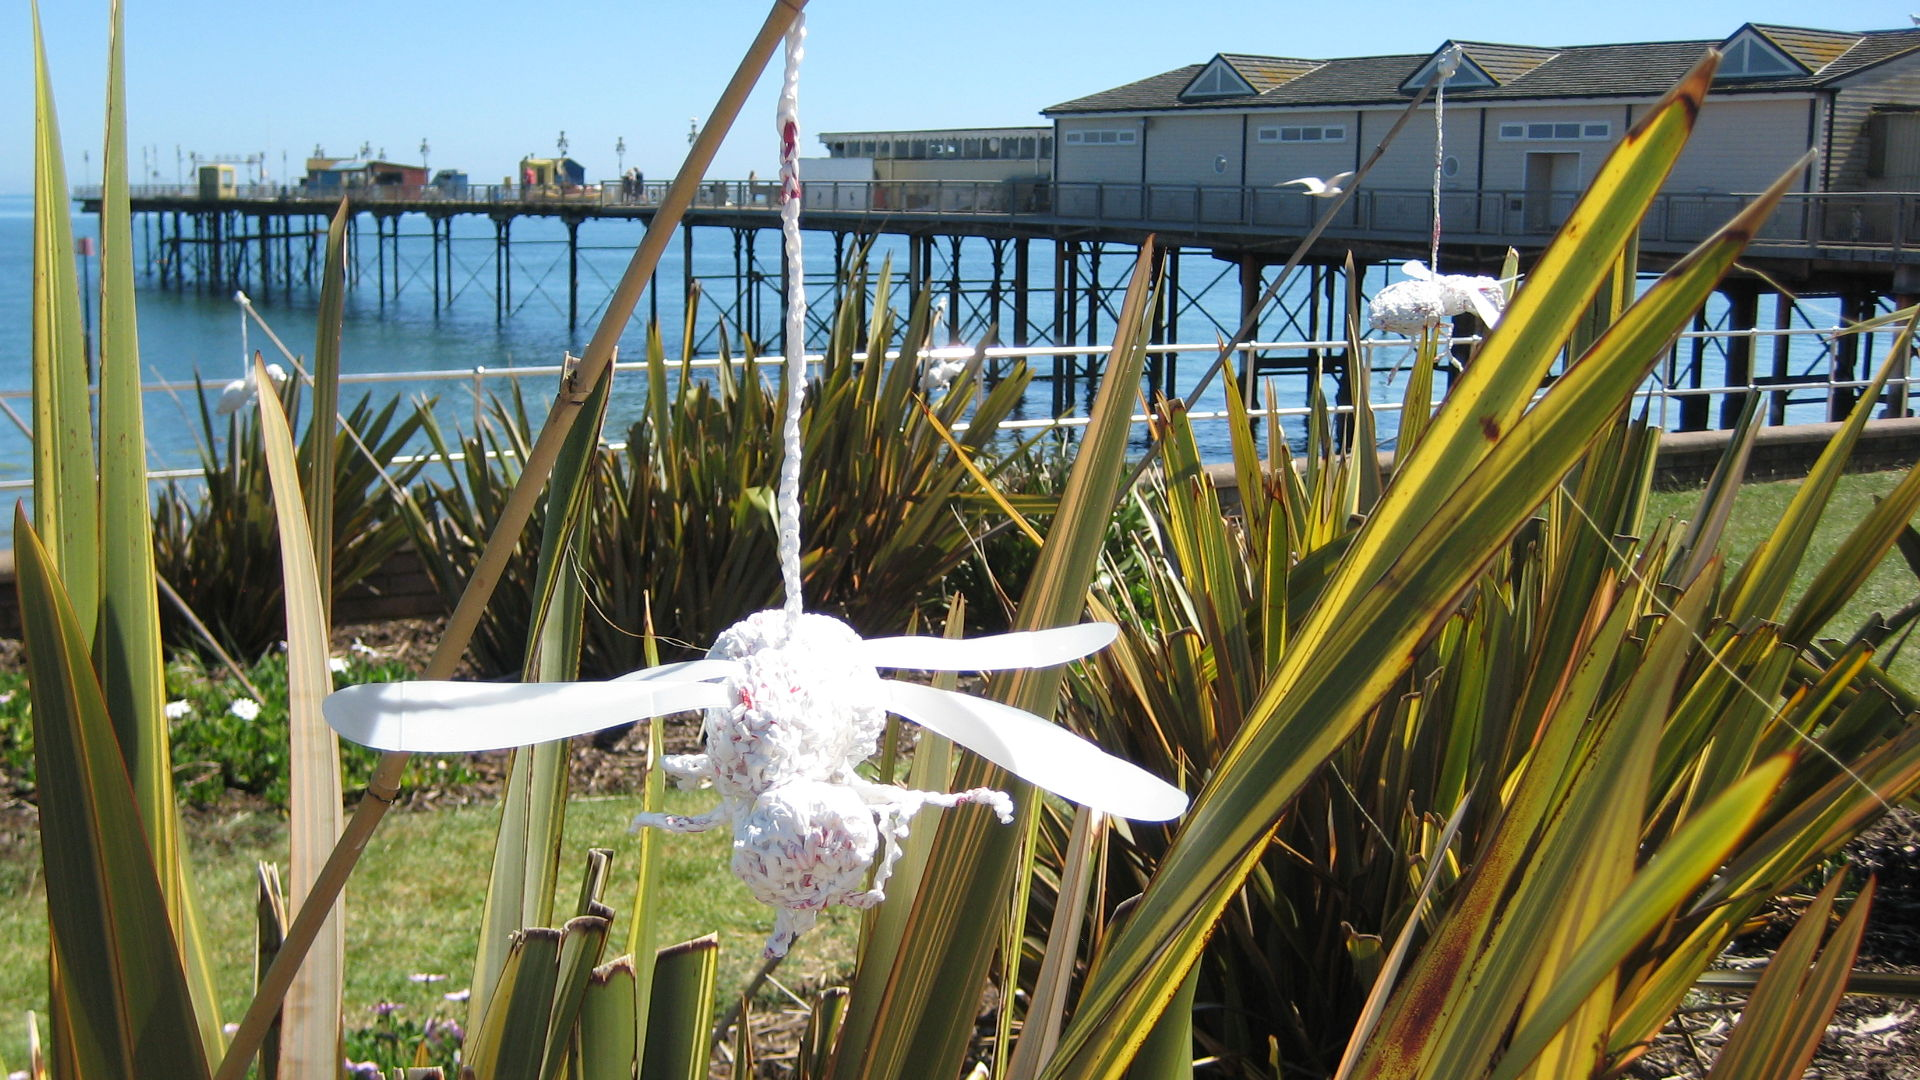 Ghost Bees at Teignmouth Recycled Art in the Landscape